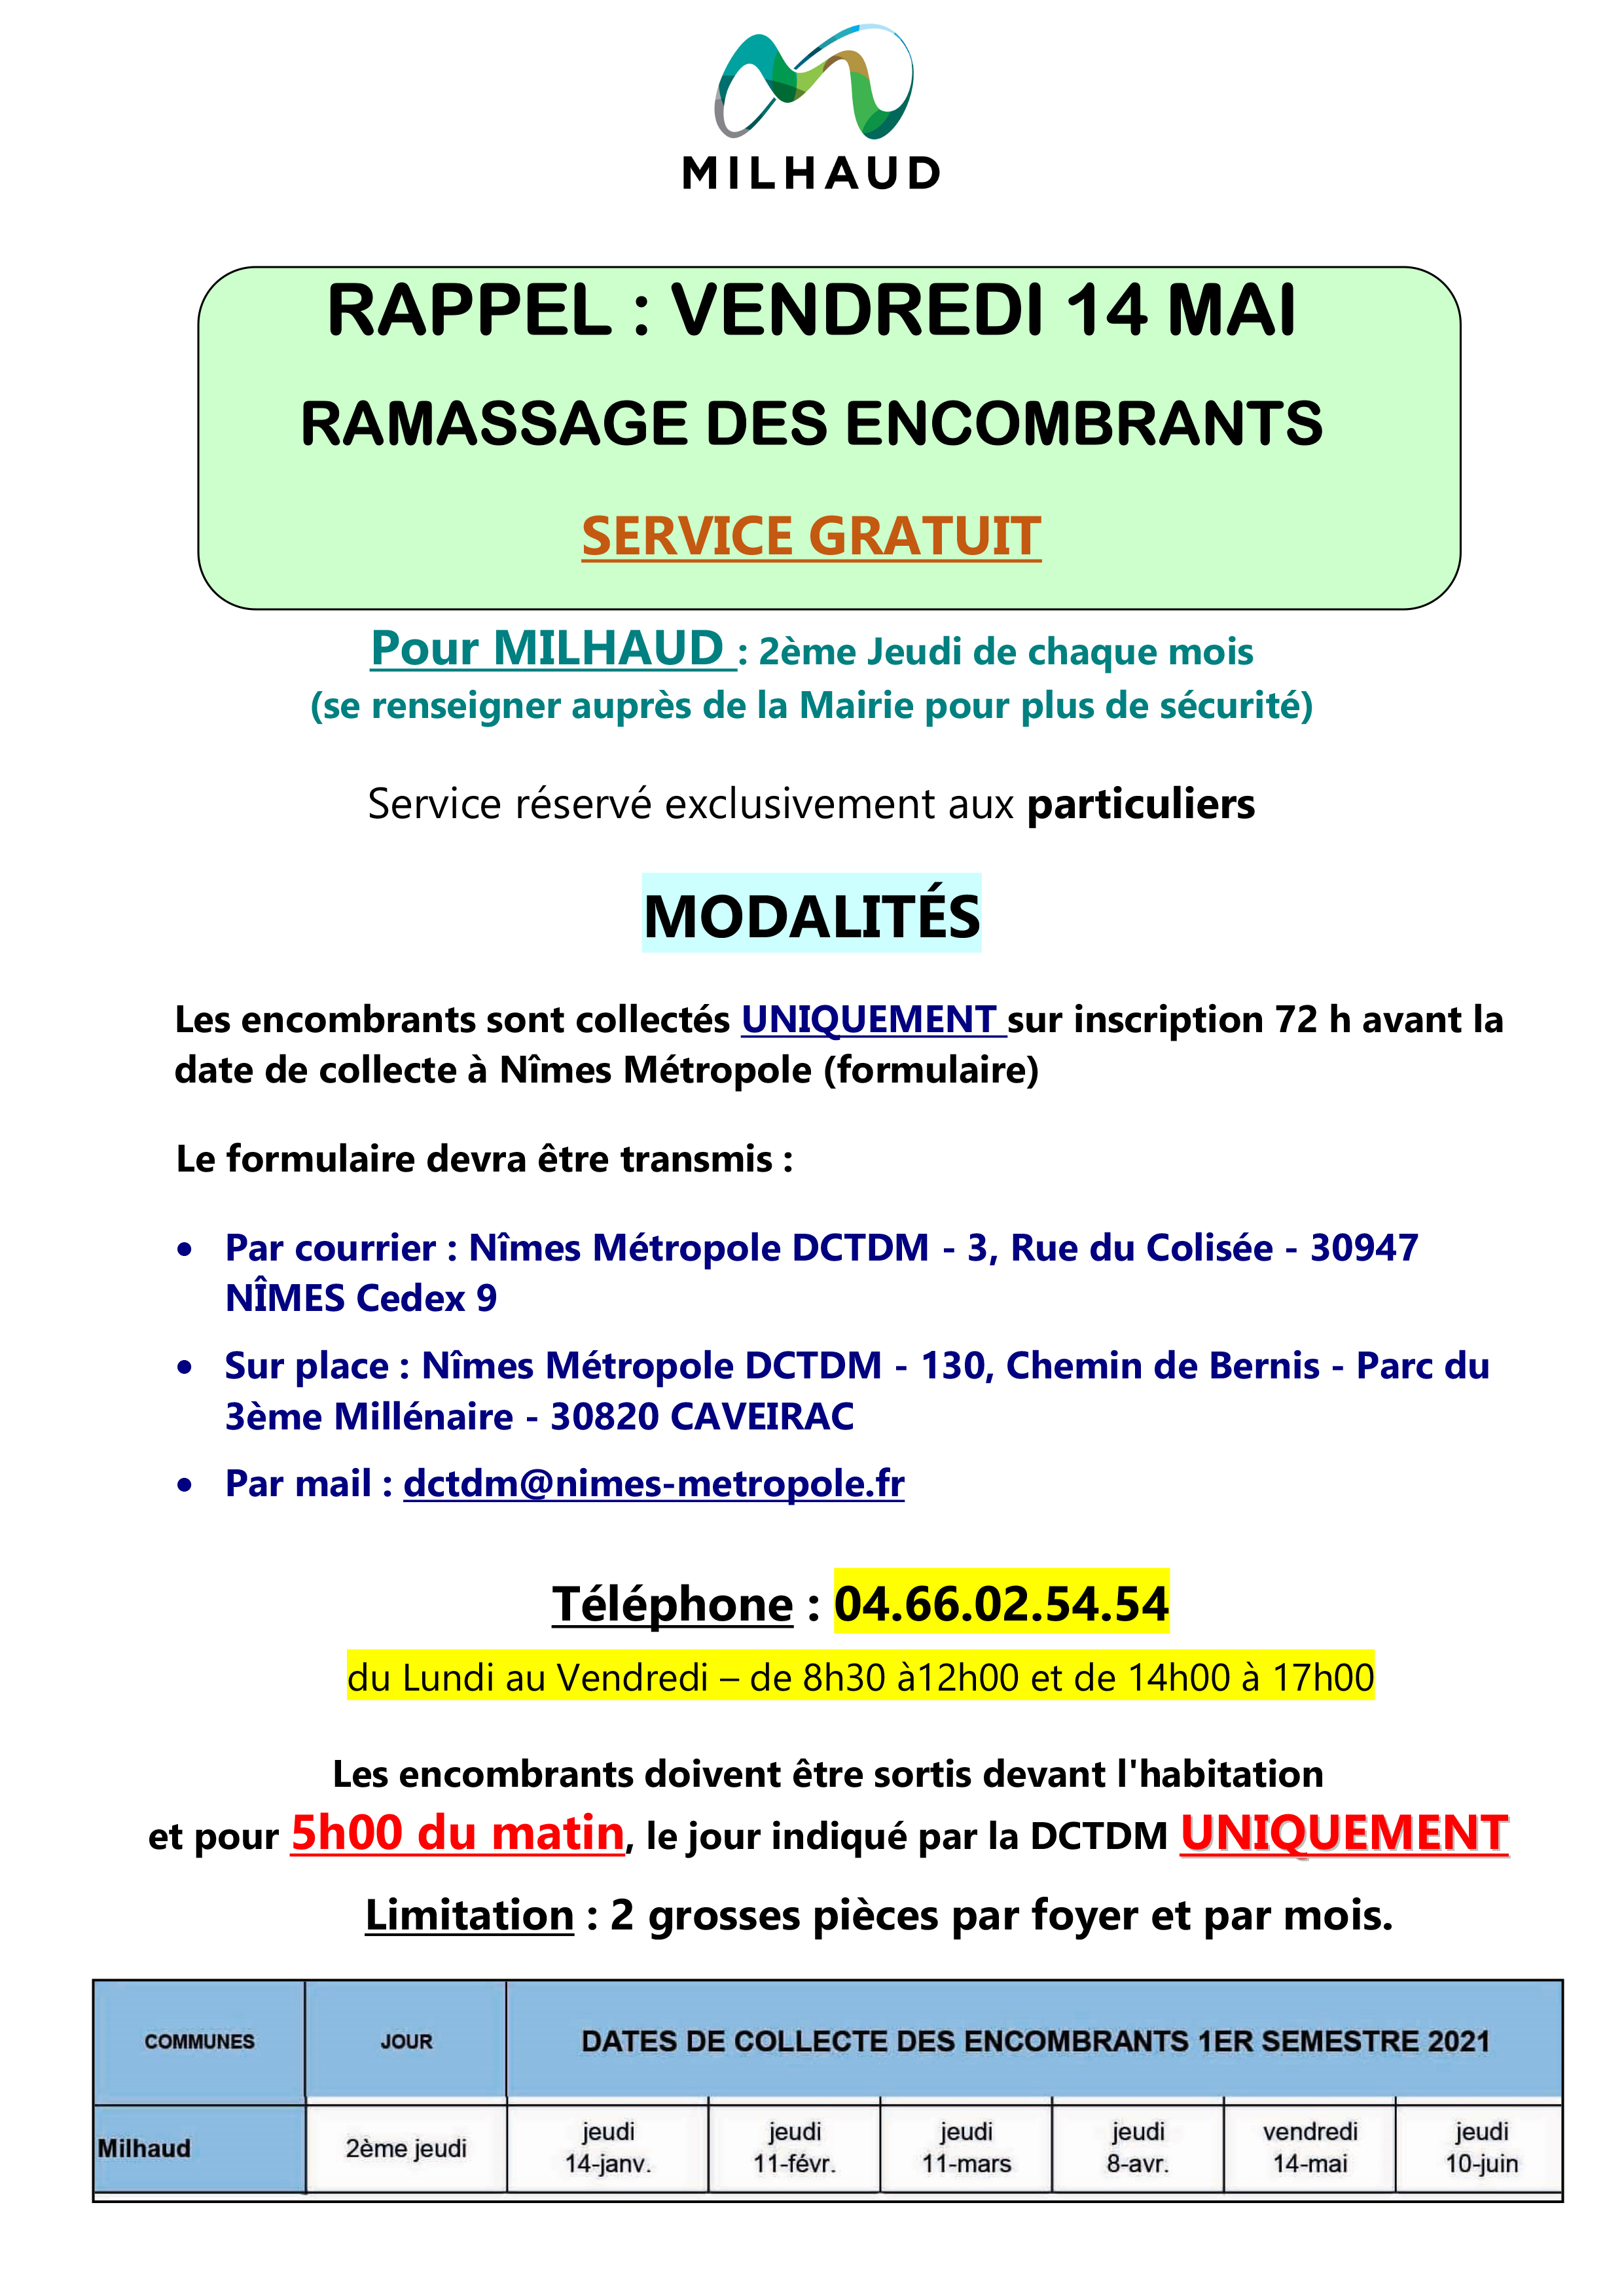 RAPPEL Ramassage encombrants Mai 2021